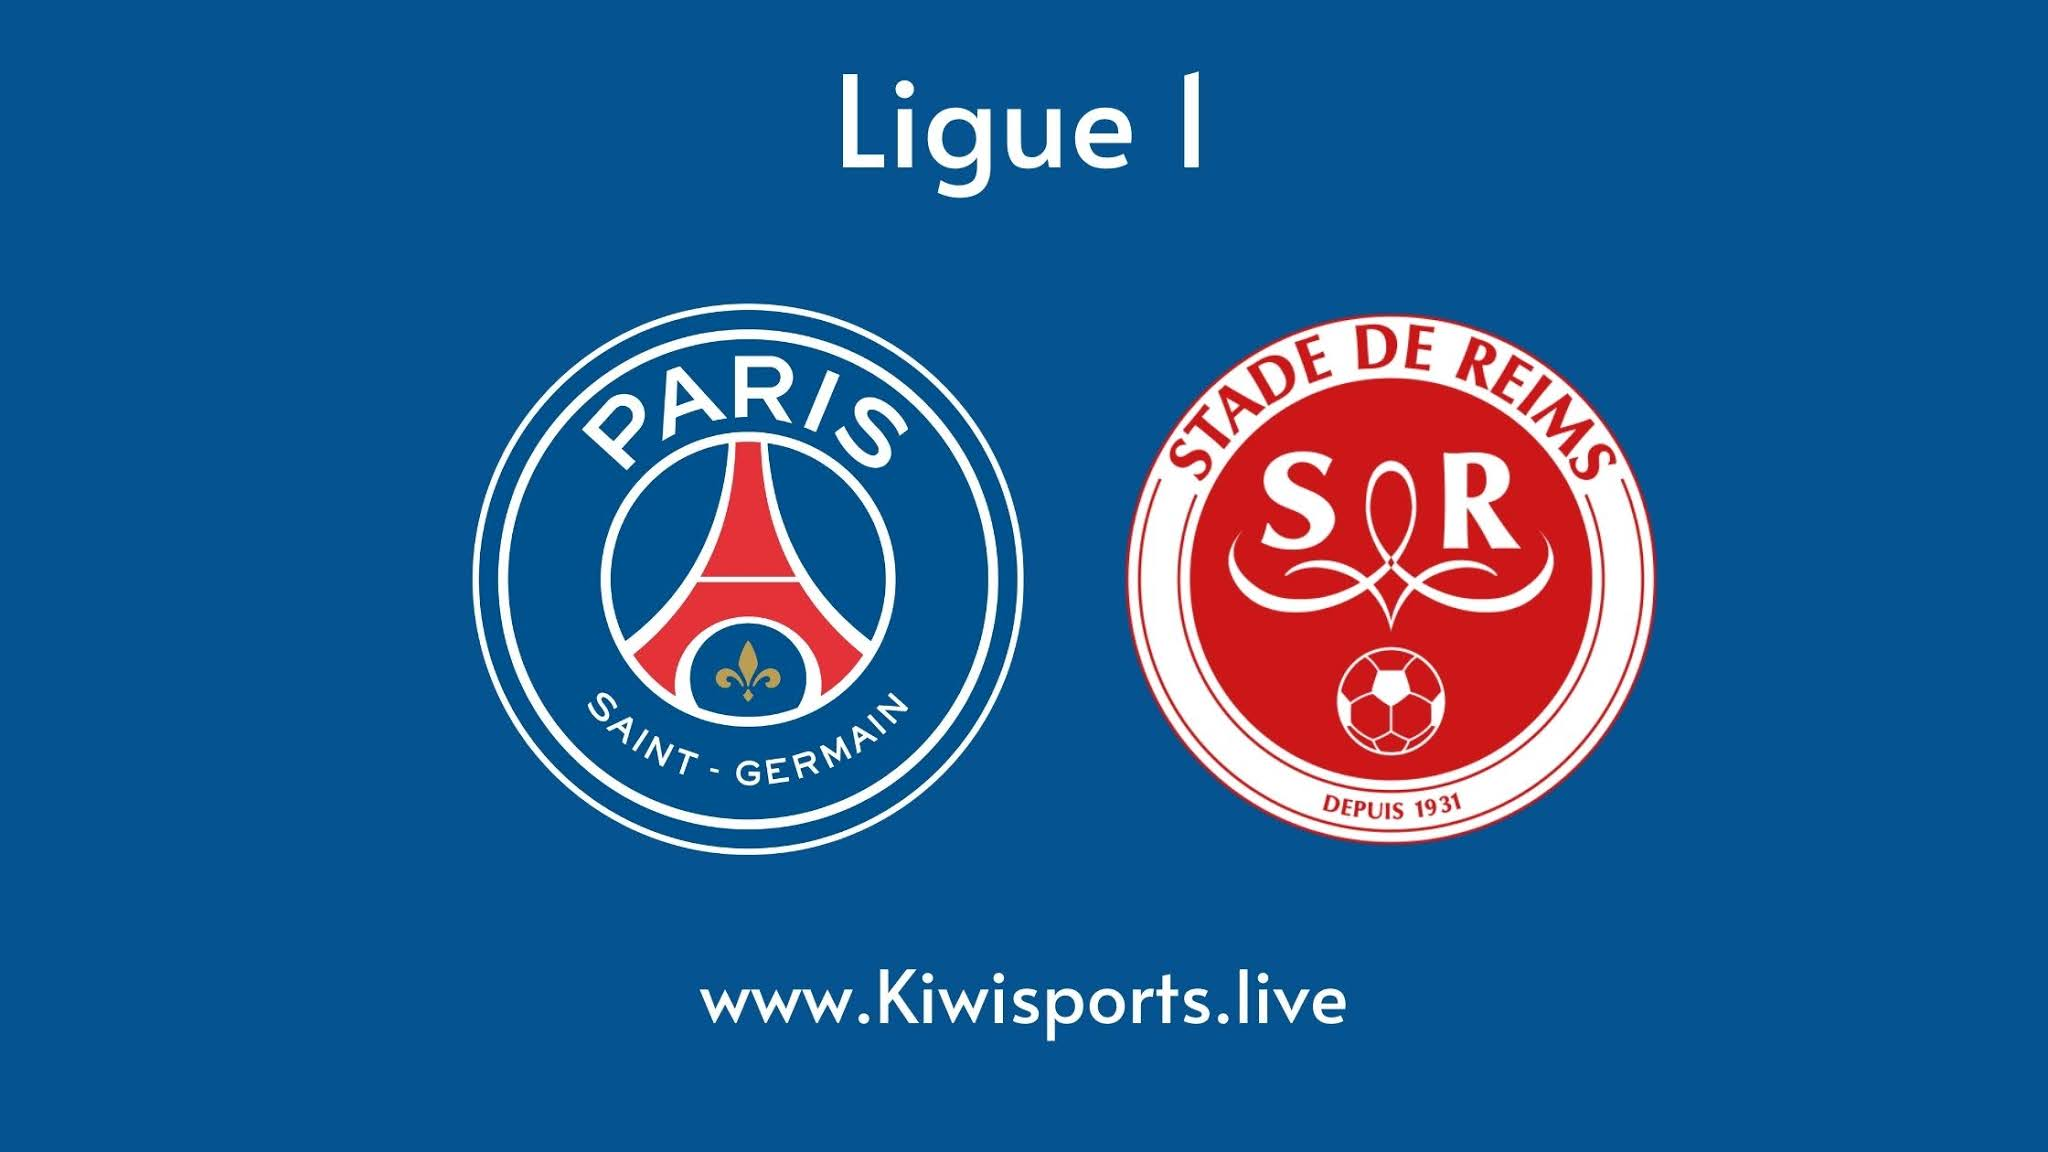 psg vs Reims live stream free